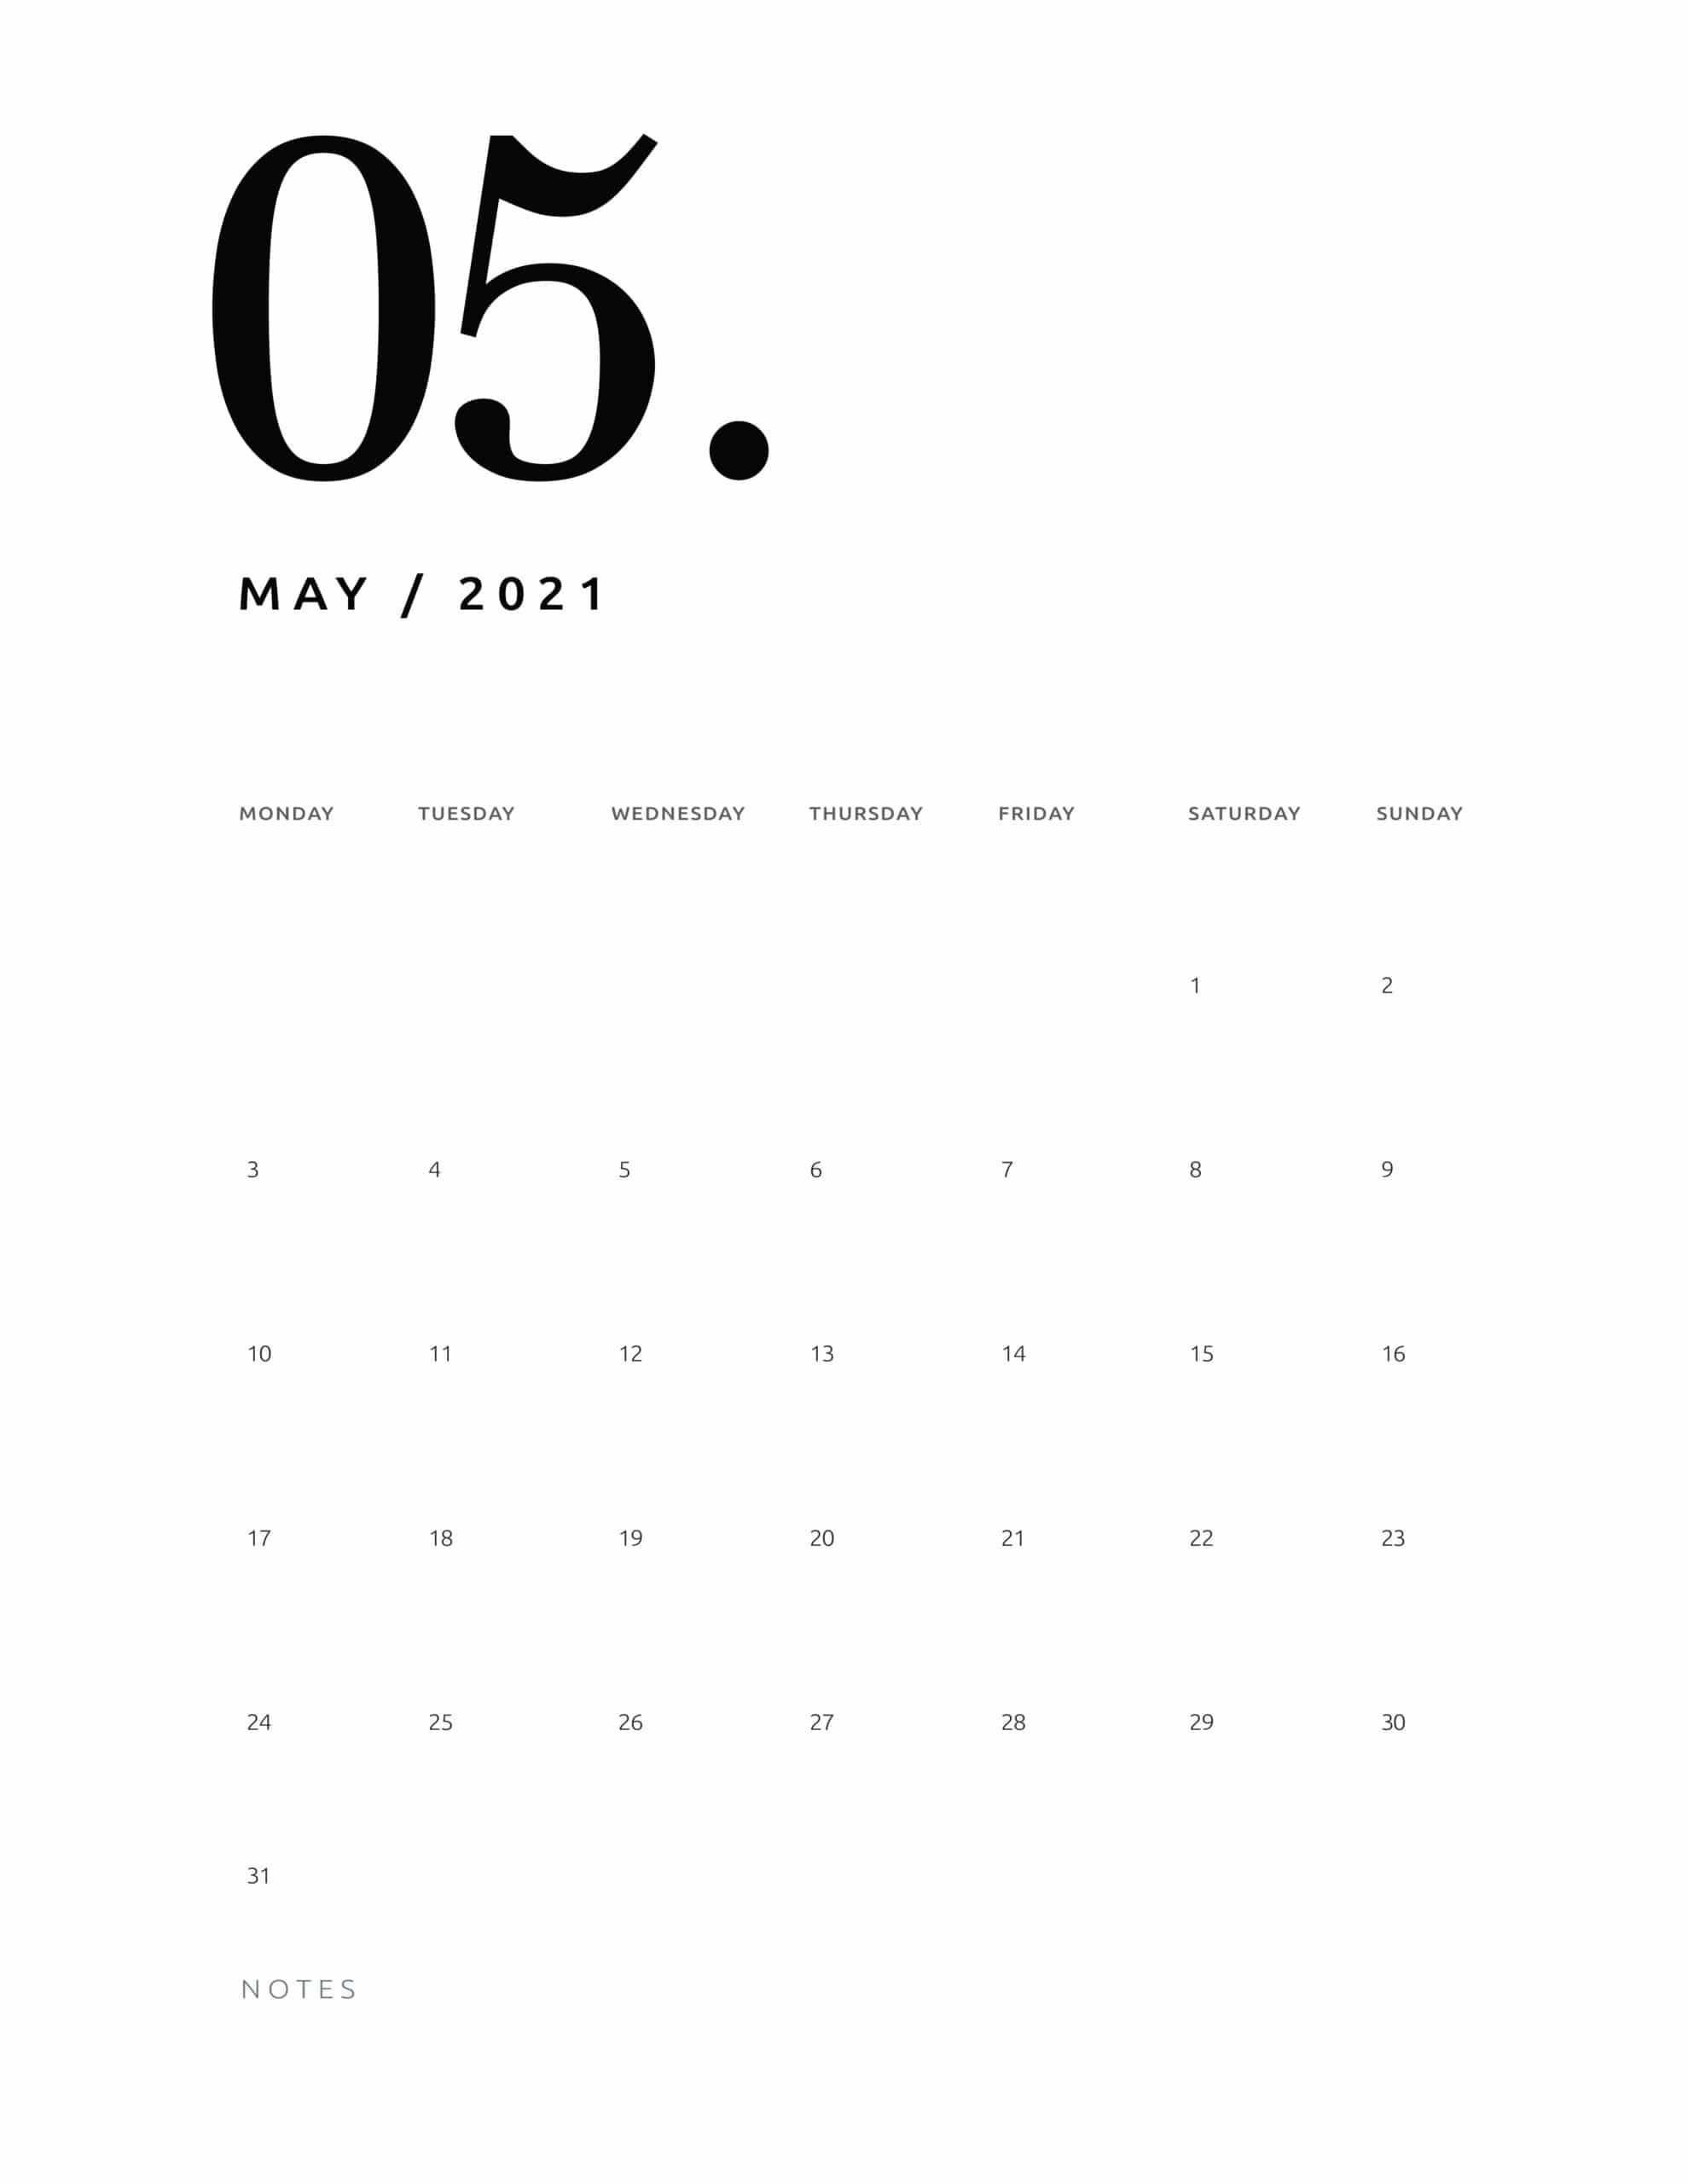 Free 2021 Calendar Numerical - World Of Printables within Which Calendar Year Match 2021